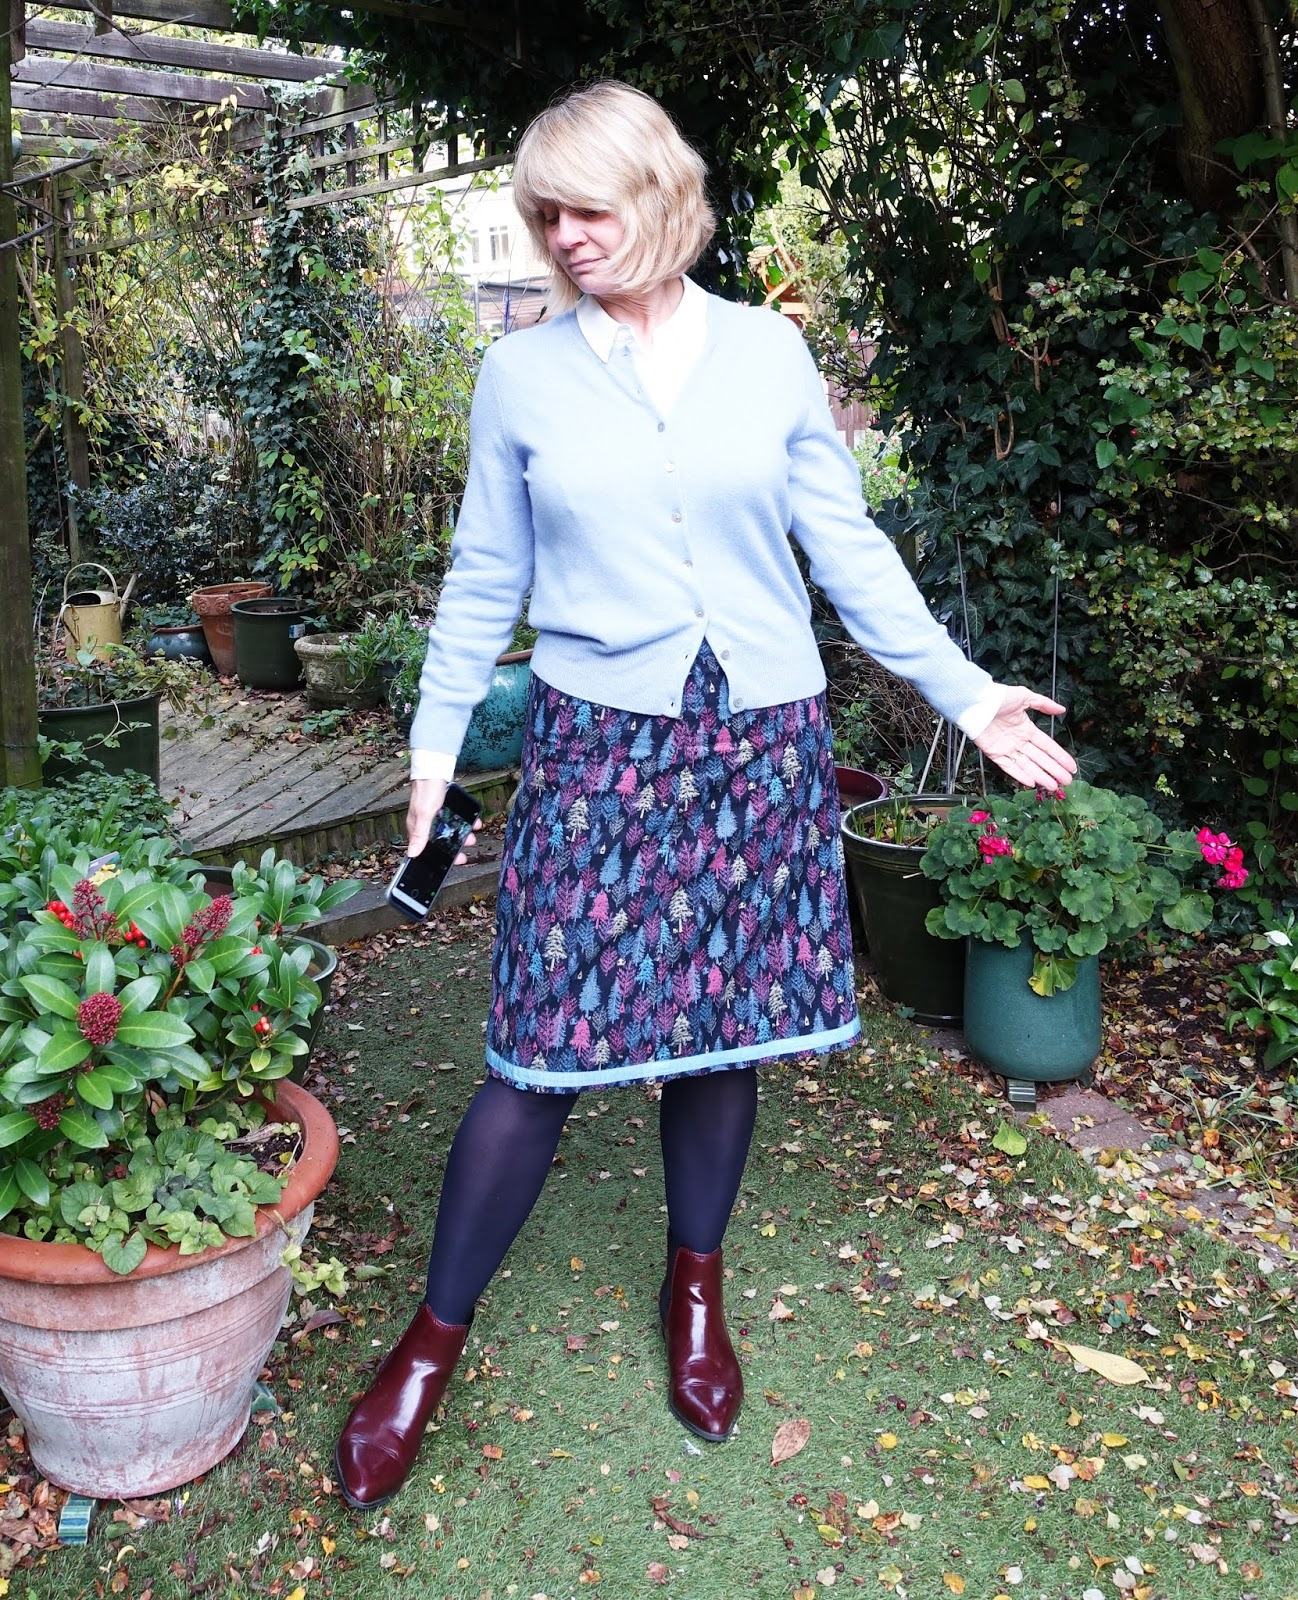 Over 50s fashion blogger Gail Hanlon shows a boring outfit which makes her look frumpy. By adding three accessories she improves the line and feel